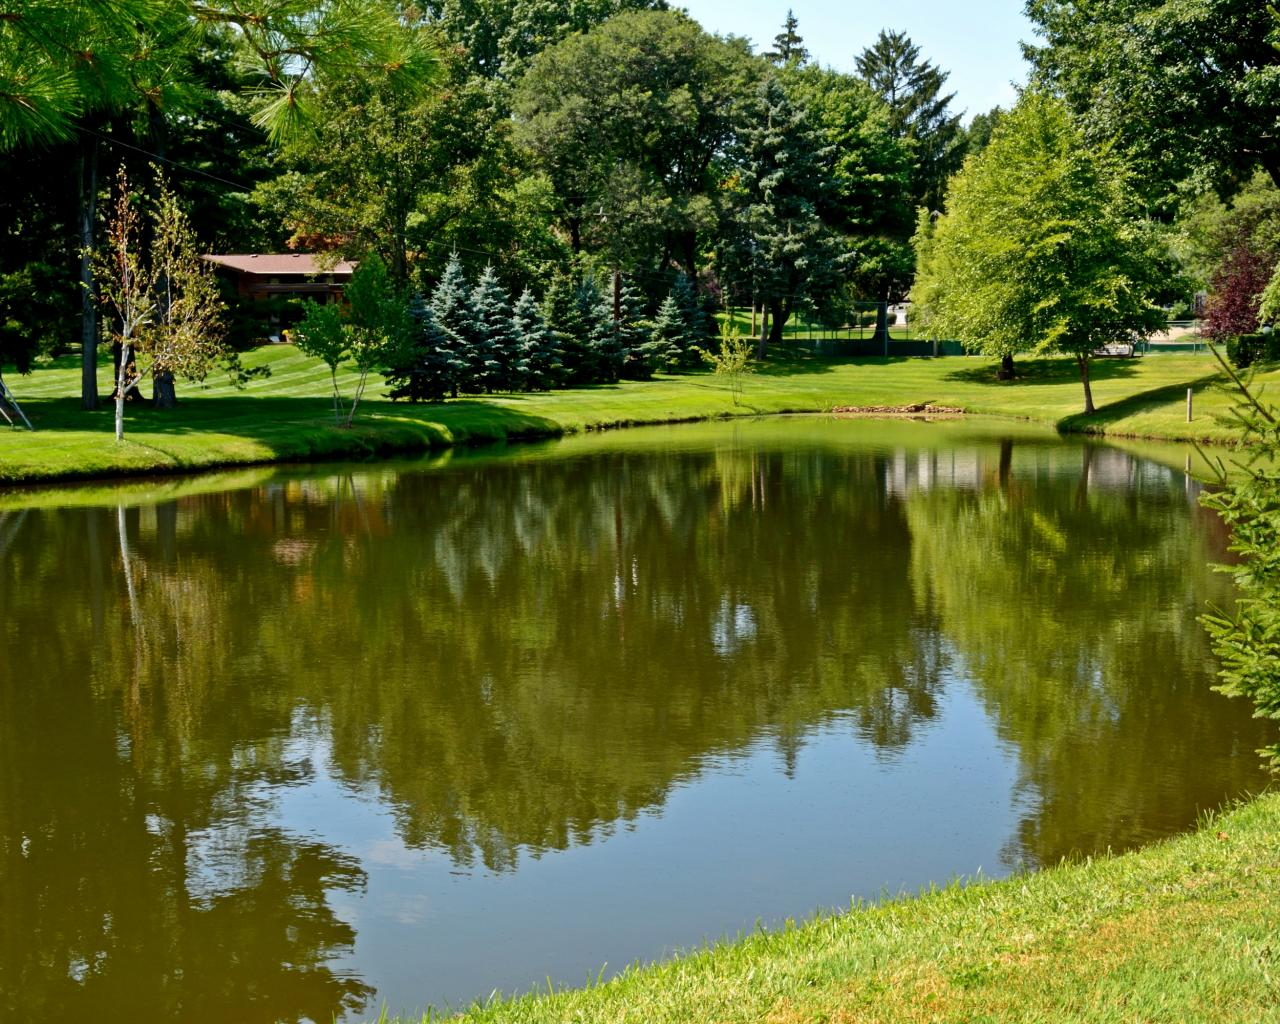 Summer reflections pond scenic peaceful 1280x1024 1840